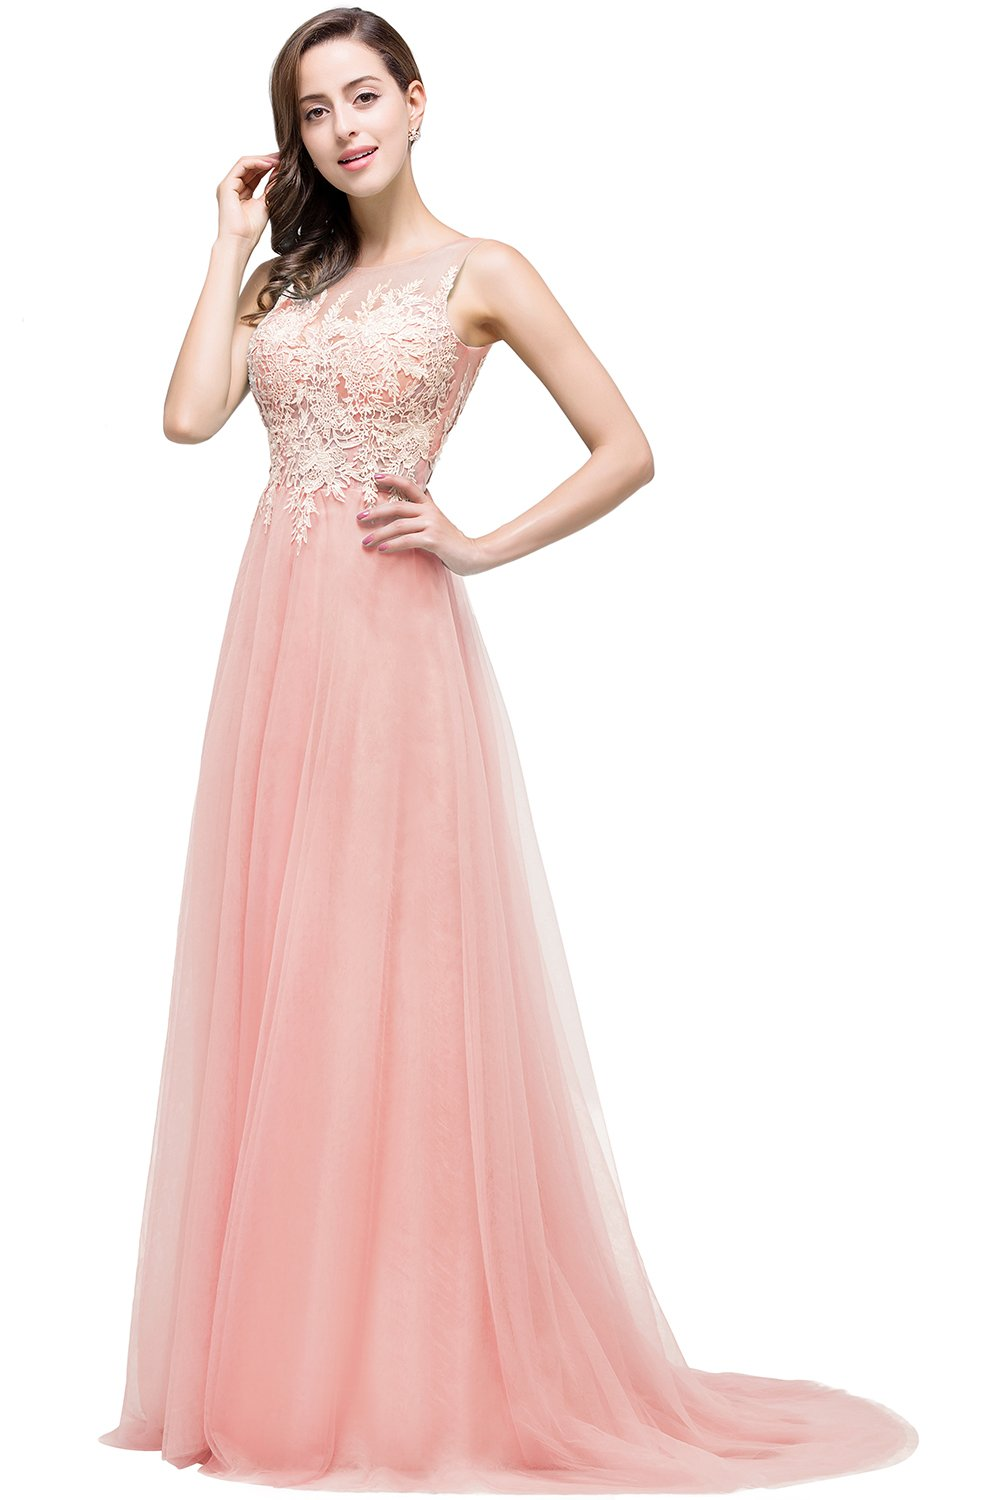 Babyonlinedress Open V-back Sleeveless Tulle floral lace Long Prom dress